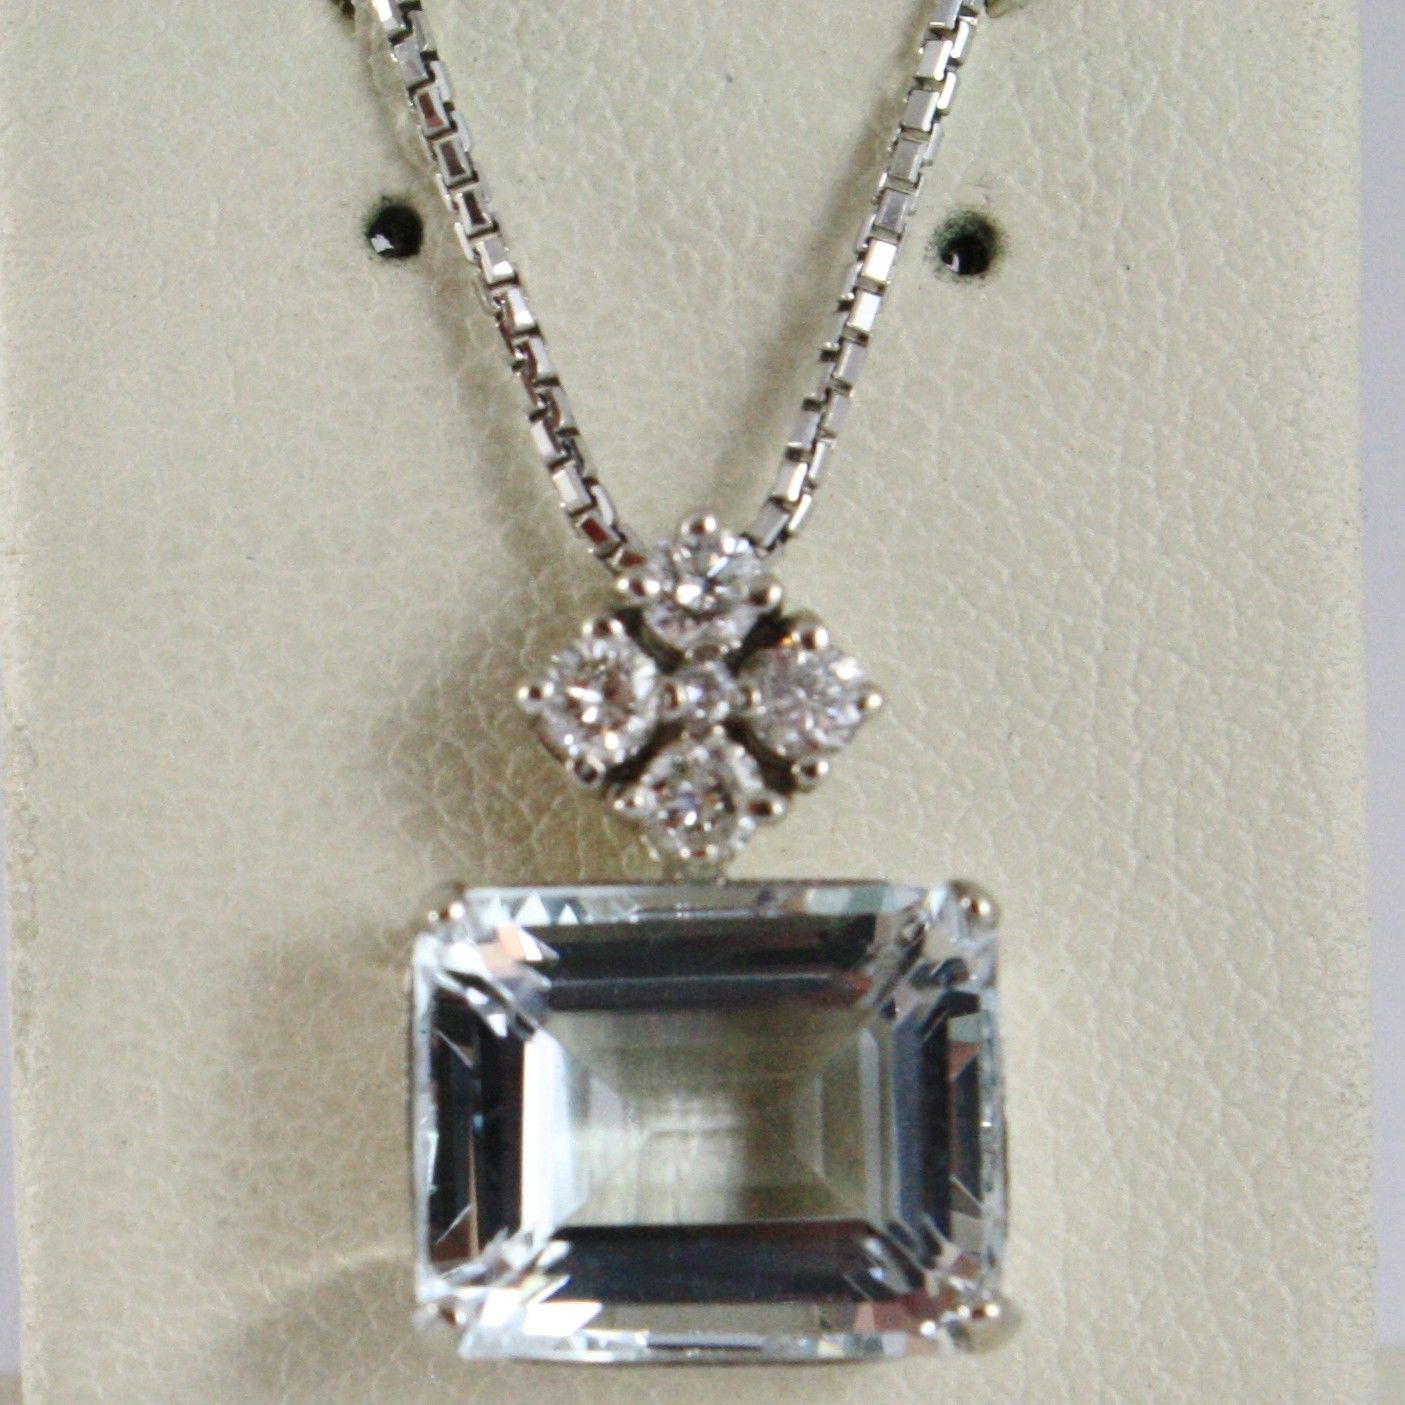 18K WHITE GOLD NECKLACE WITH BIG EMERALD CUT AQUAMARINE 2.5 CT & DIAMOND PENDANT